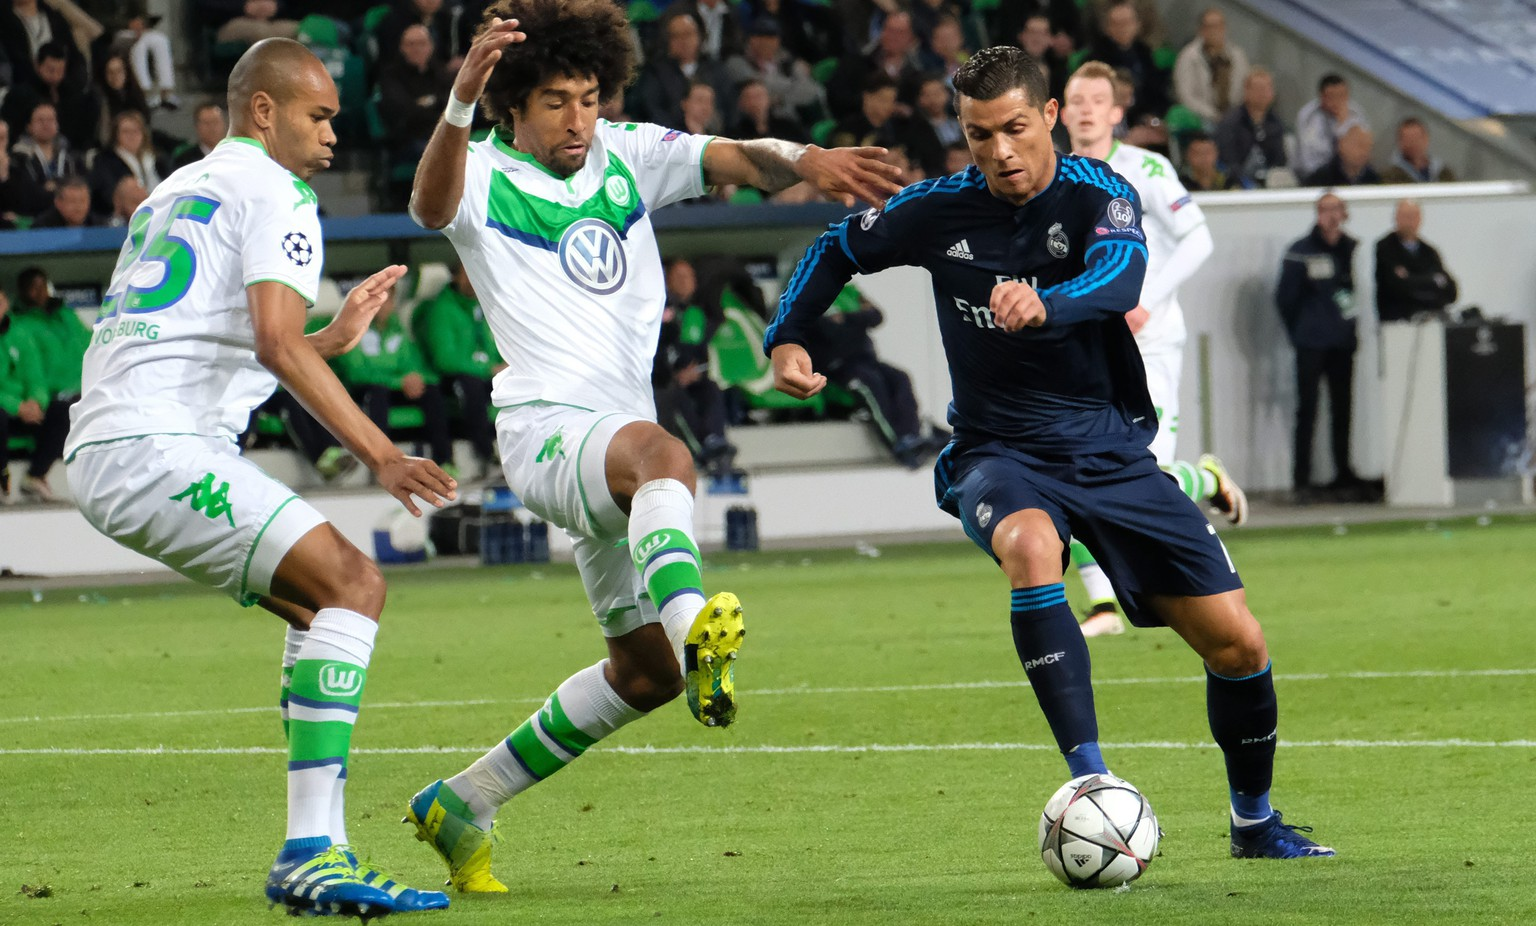 epa05246828 Wolfsburg's Dante (C) and Madrid's Cristiano Ronaldo (R) in action during the UEFA Champions League quarter final first leg soccer match between VfL Wolfsburg and Real Madrid at Volkswagen Arena in Wolfsburg, Germany, 06 April 2016.  EPA/PETER STEFFEN